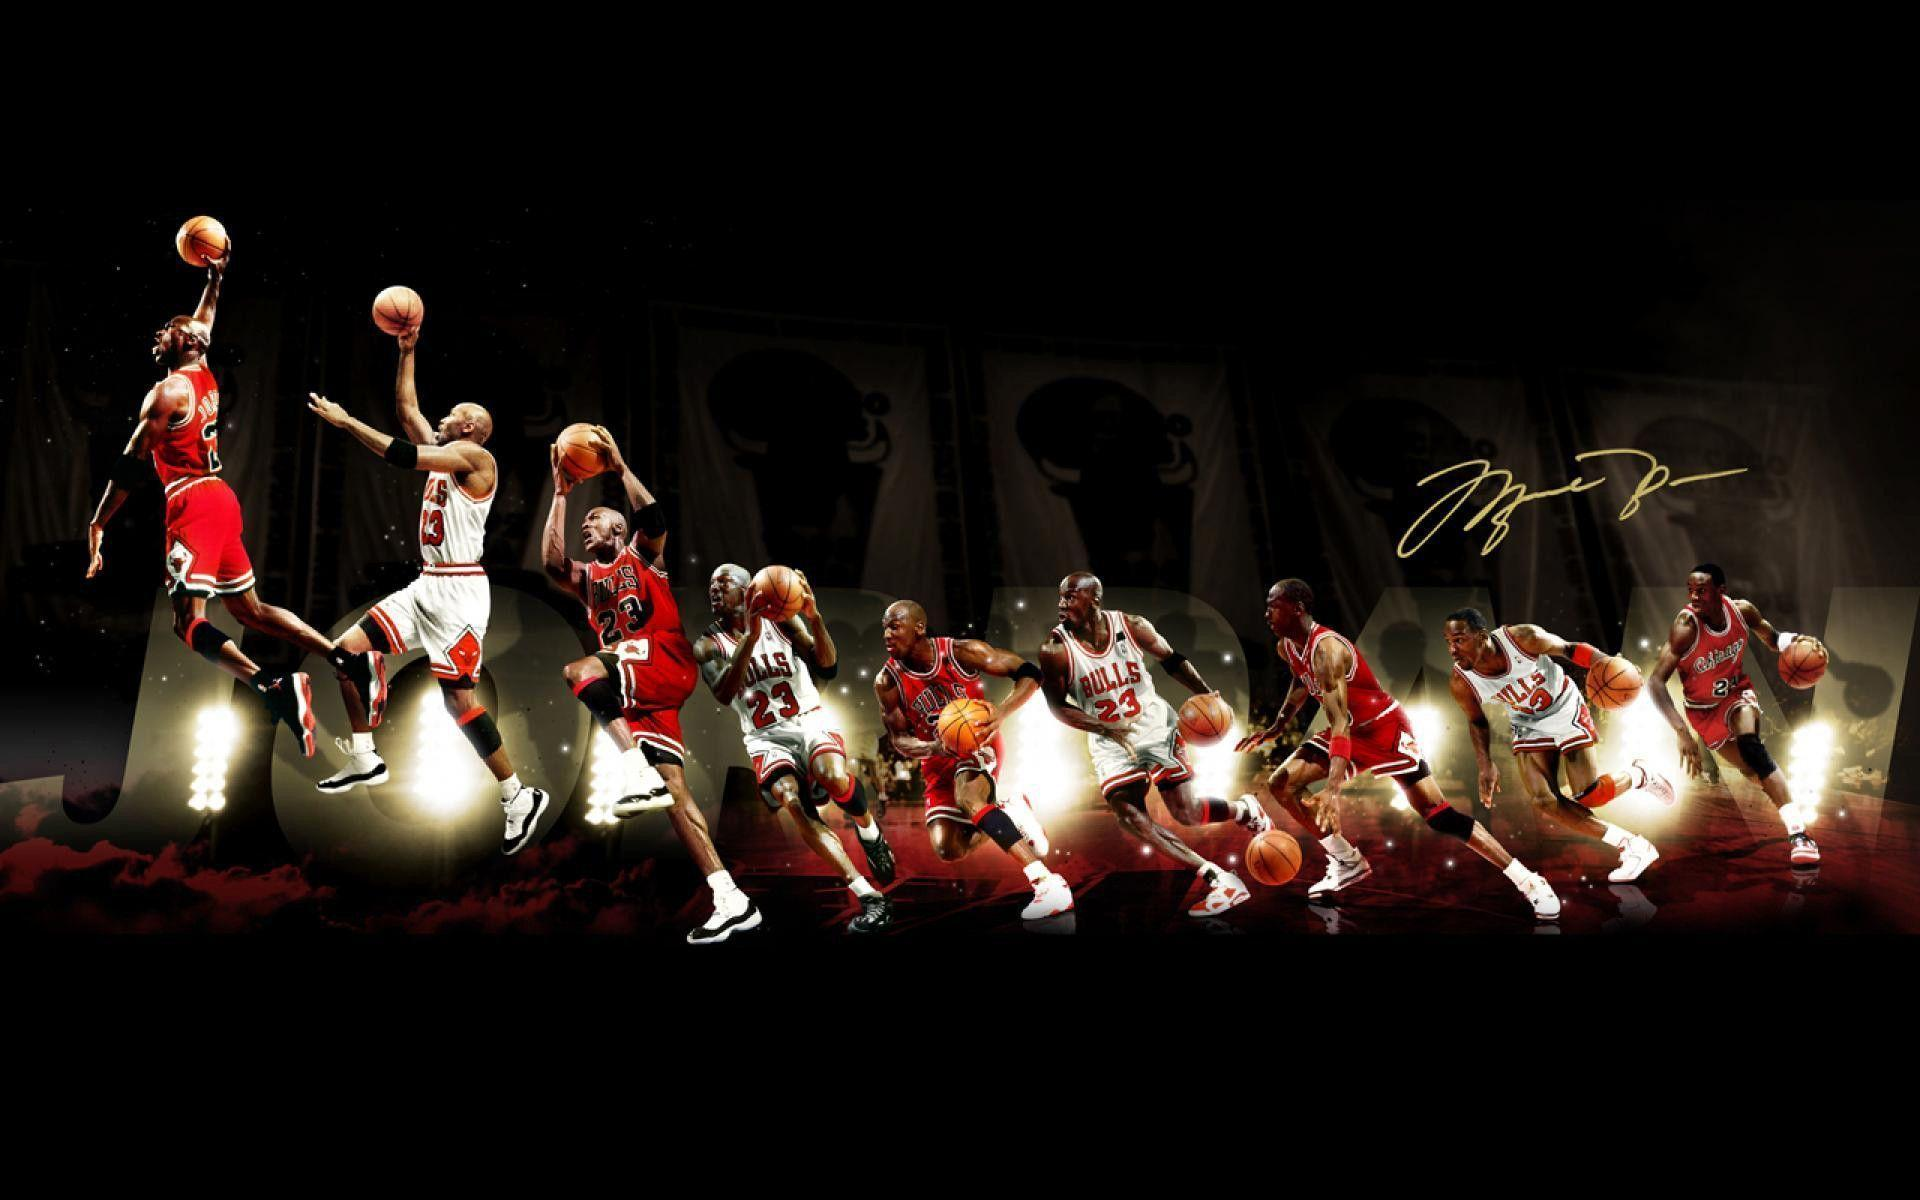 Most Downloaded Michael Jordan Wallpapers